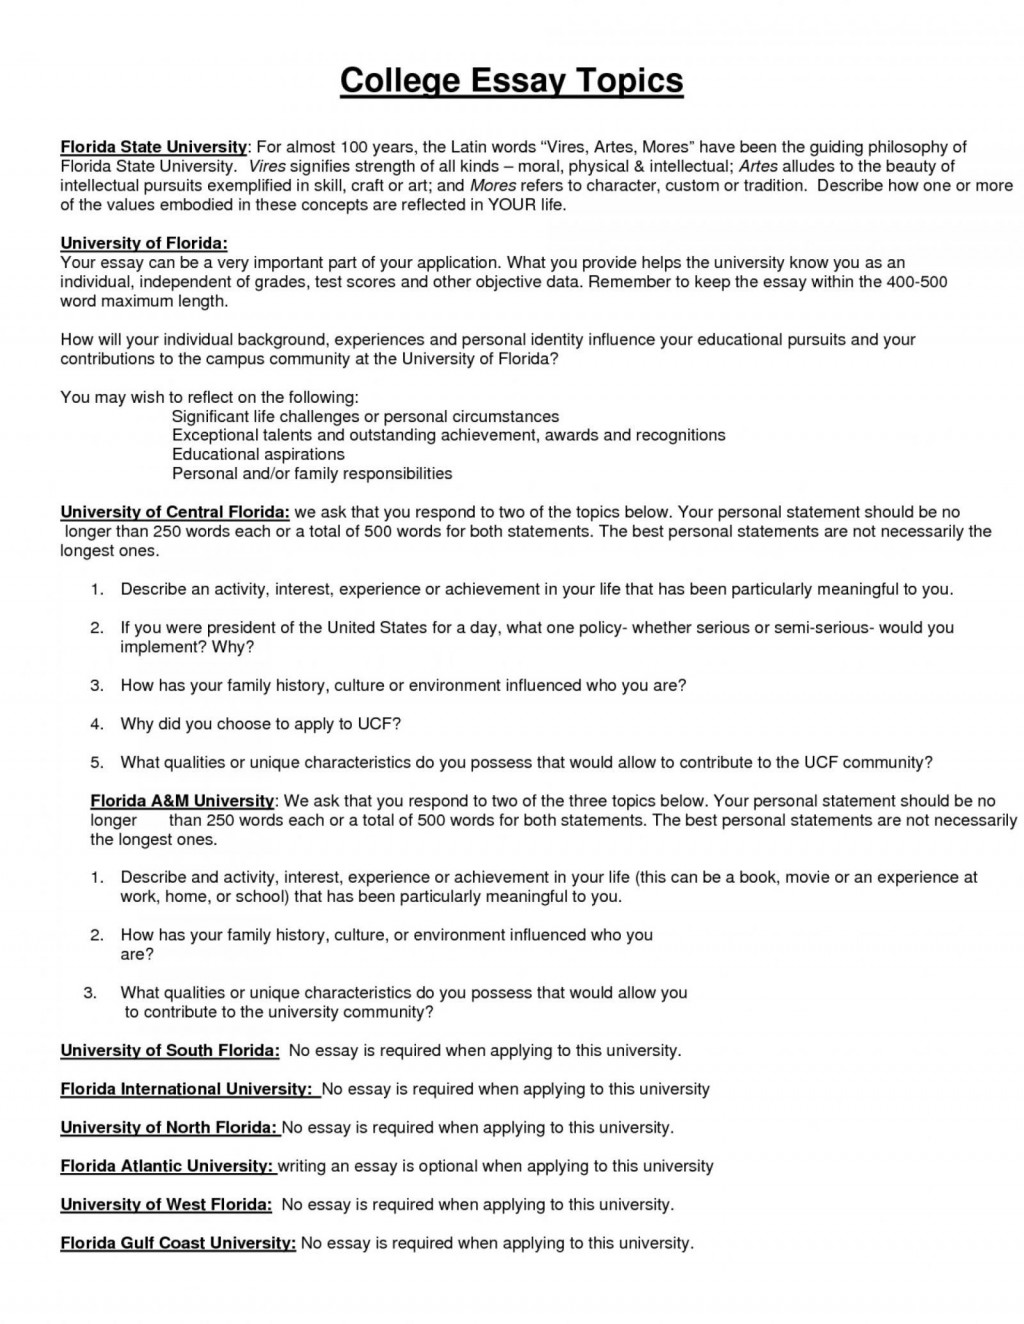 Difference Between Formal and Informal Essay | Examples & Writing Tips